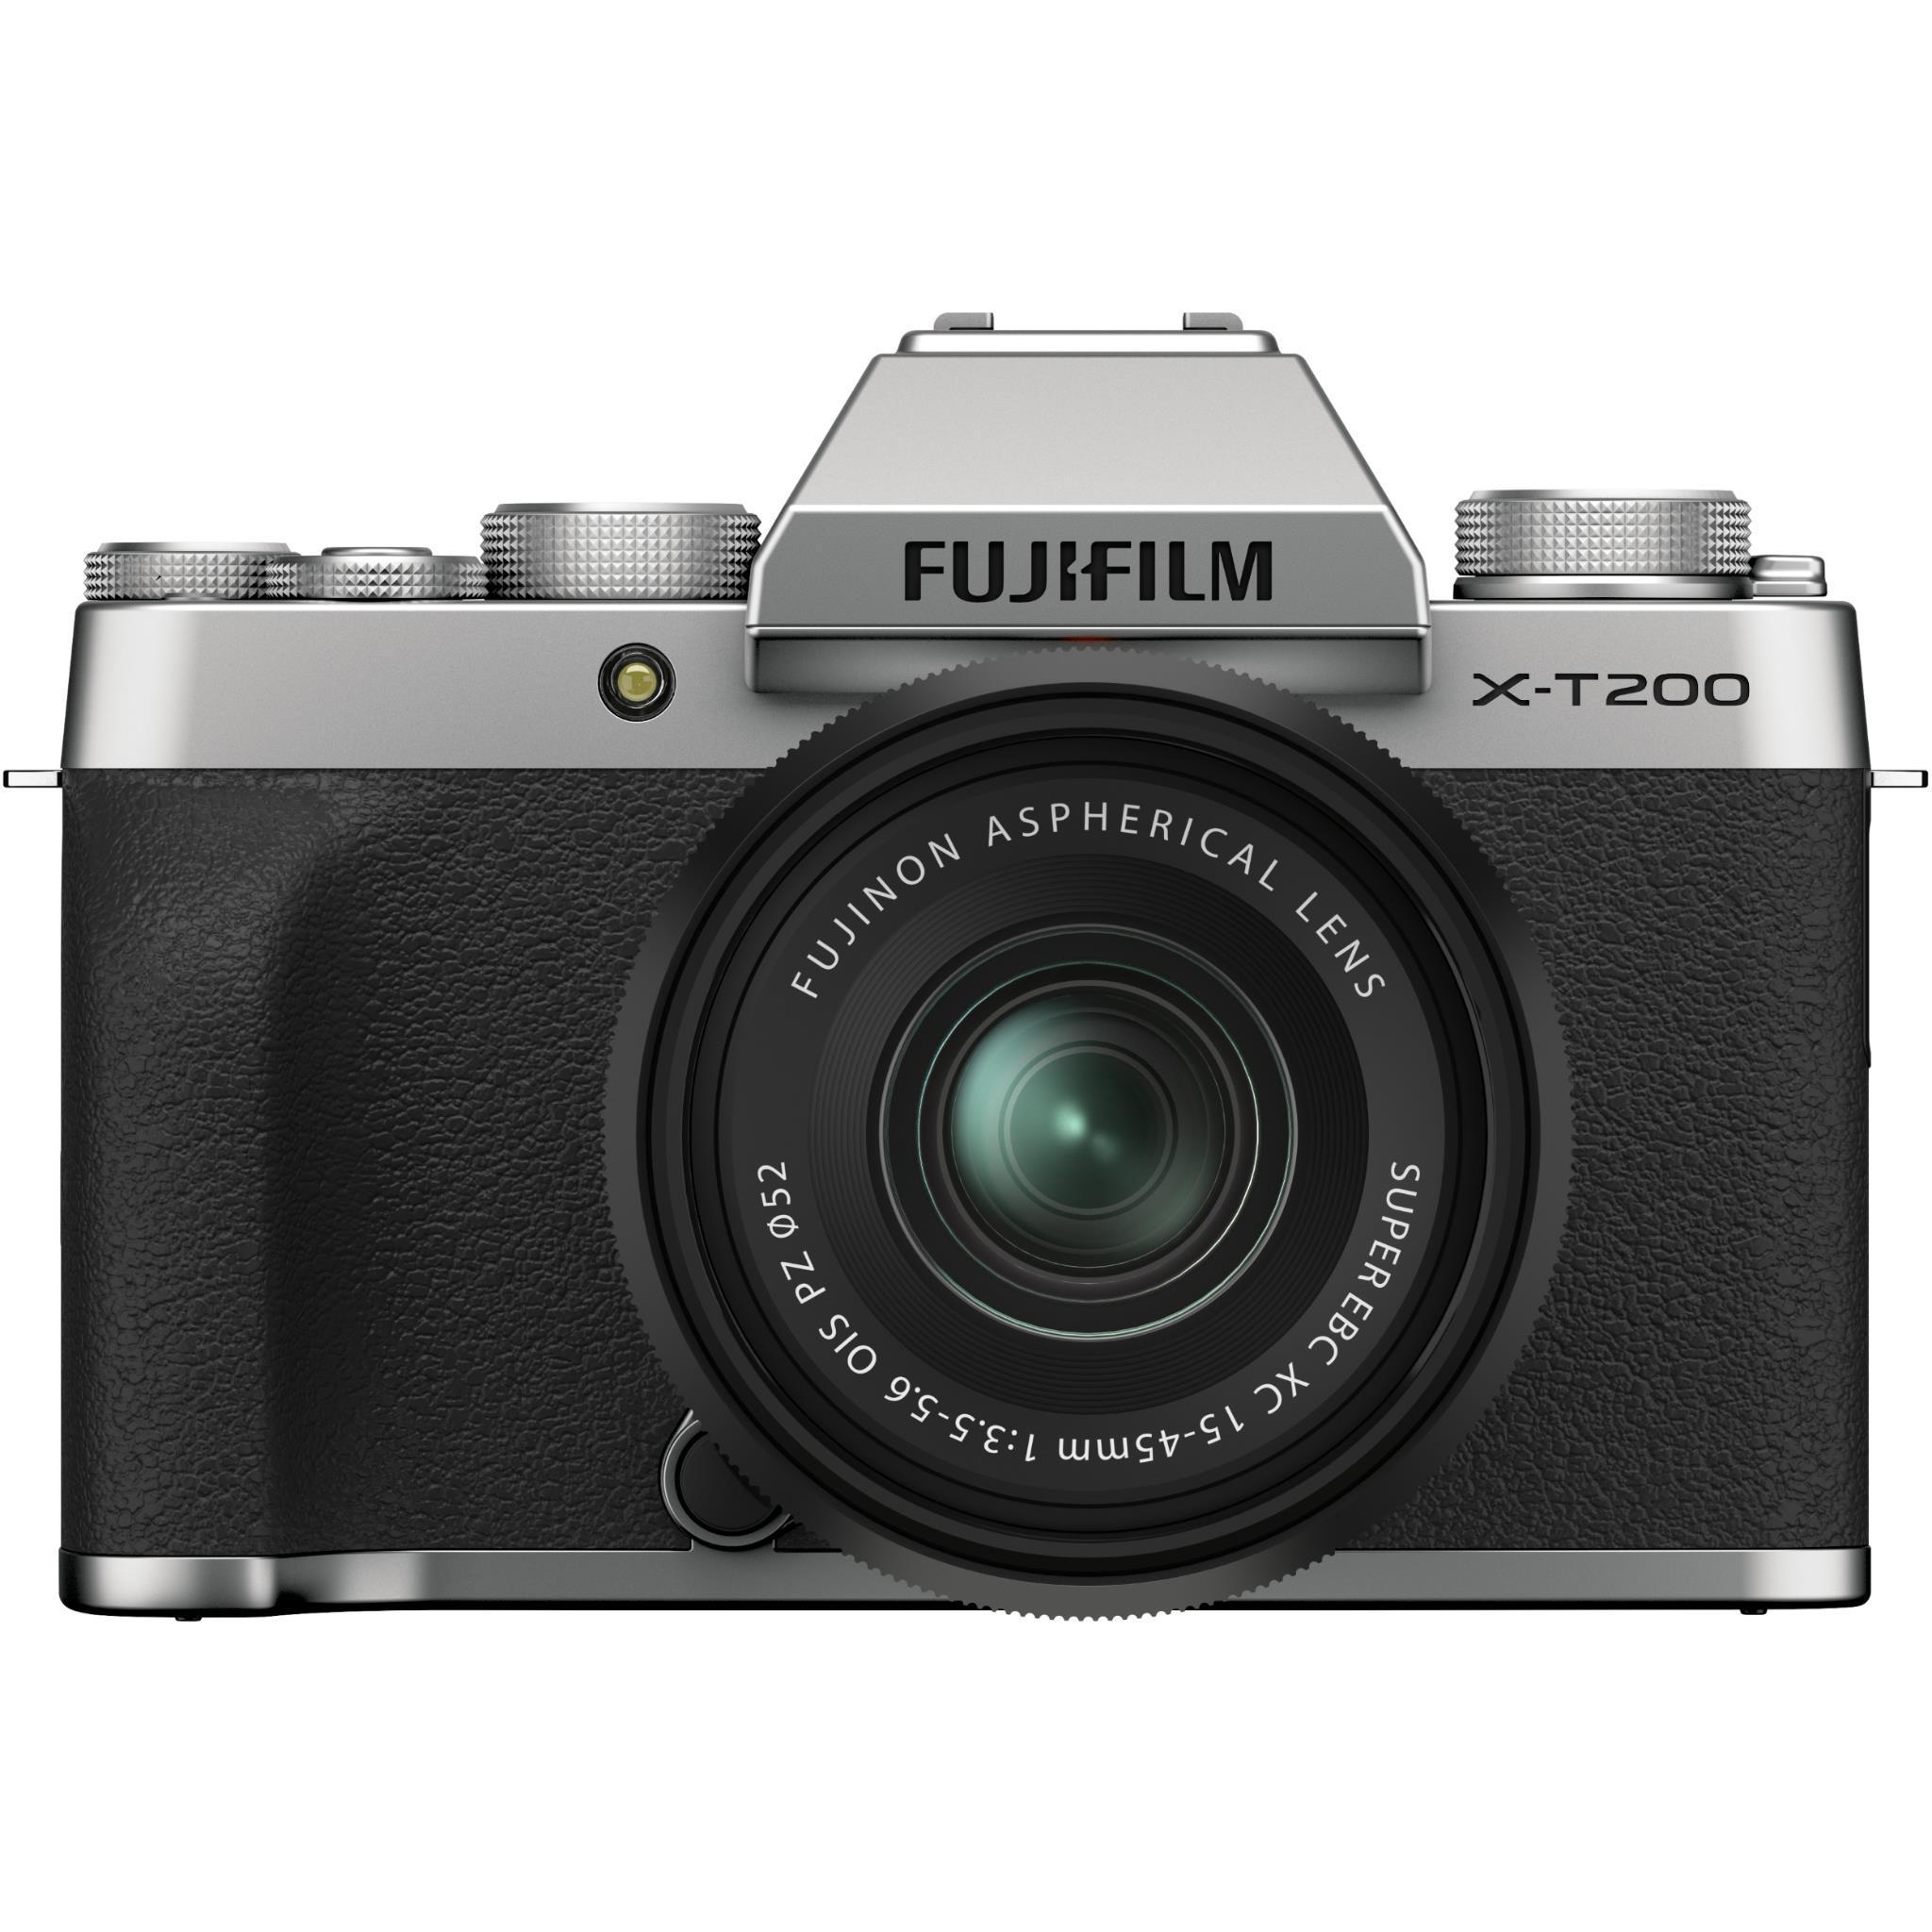 Fujifilm X-T200 Mirrorless Camera with XC15-45mm Lens (Silver)